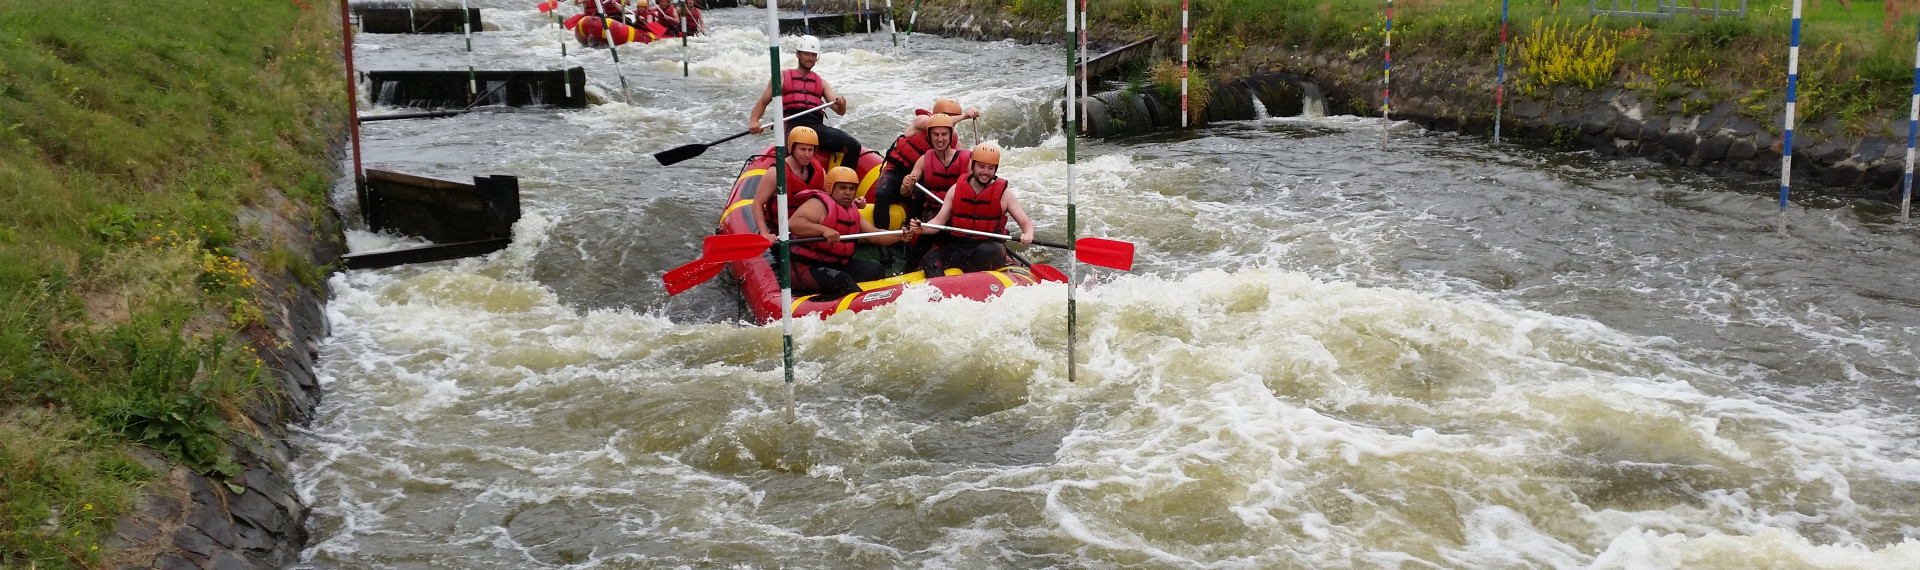 Wildwasser-Rafting Prague